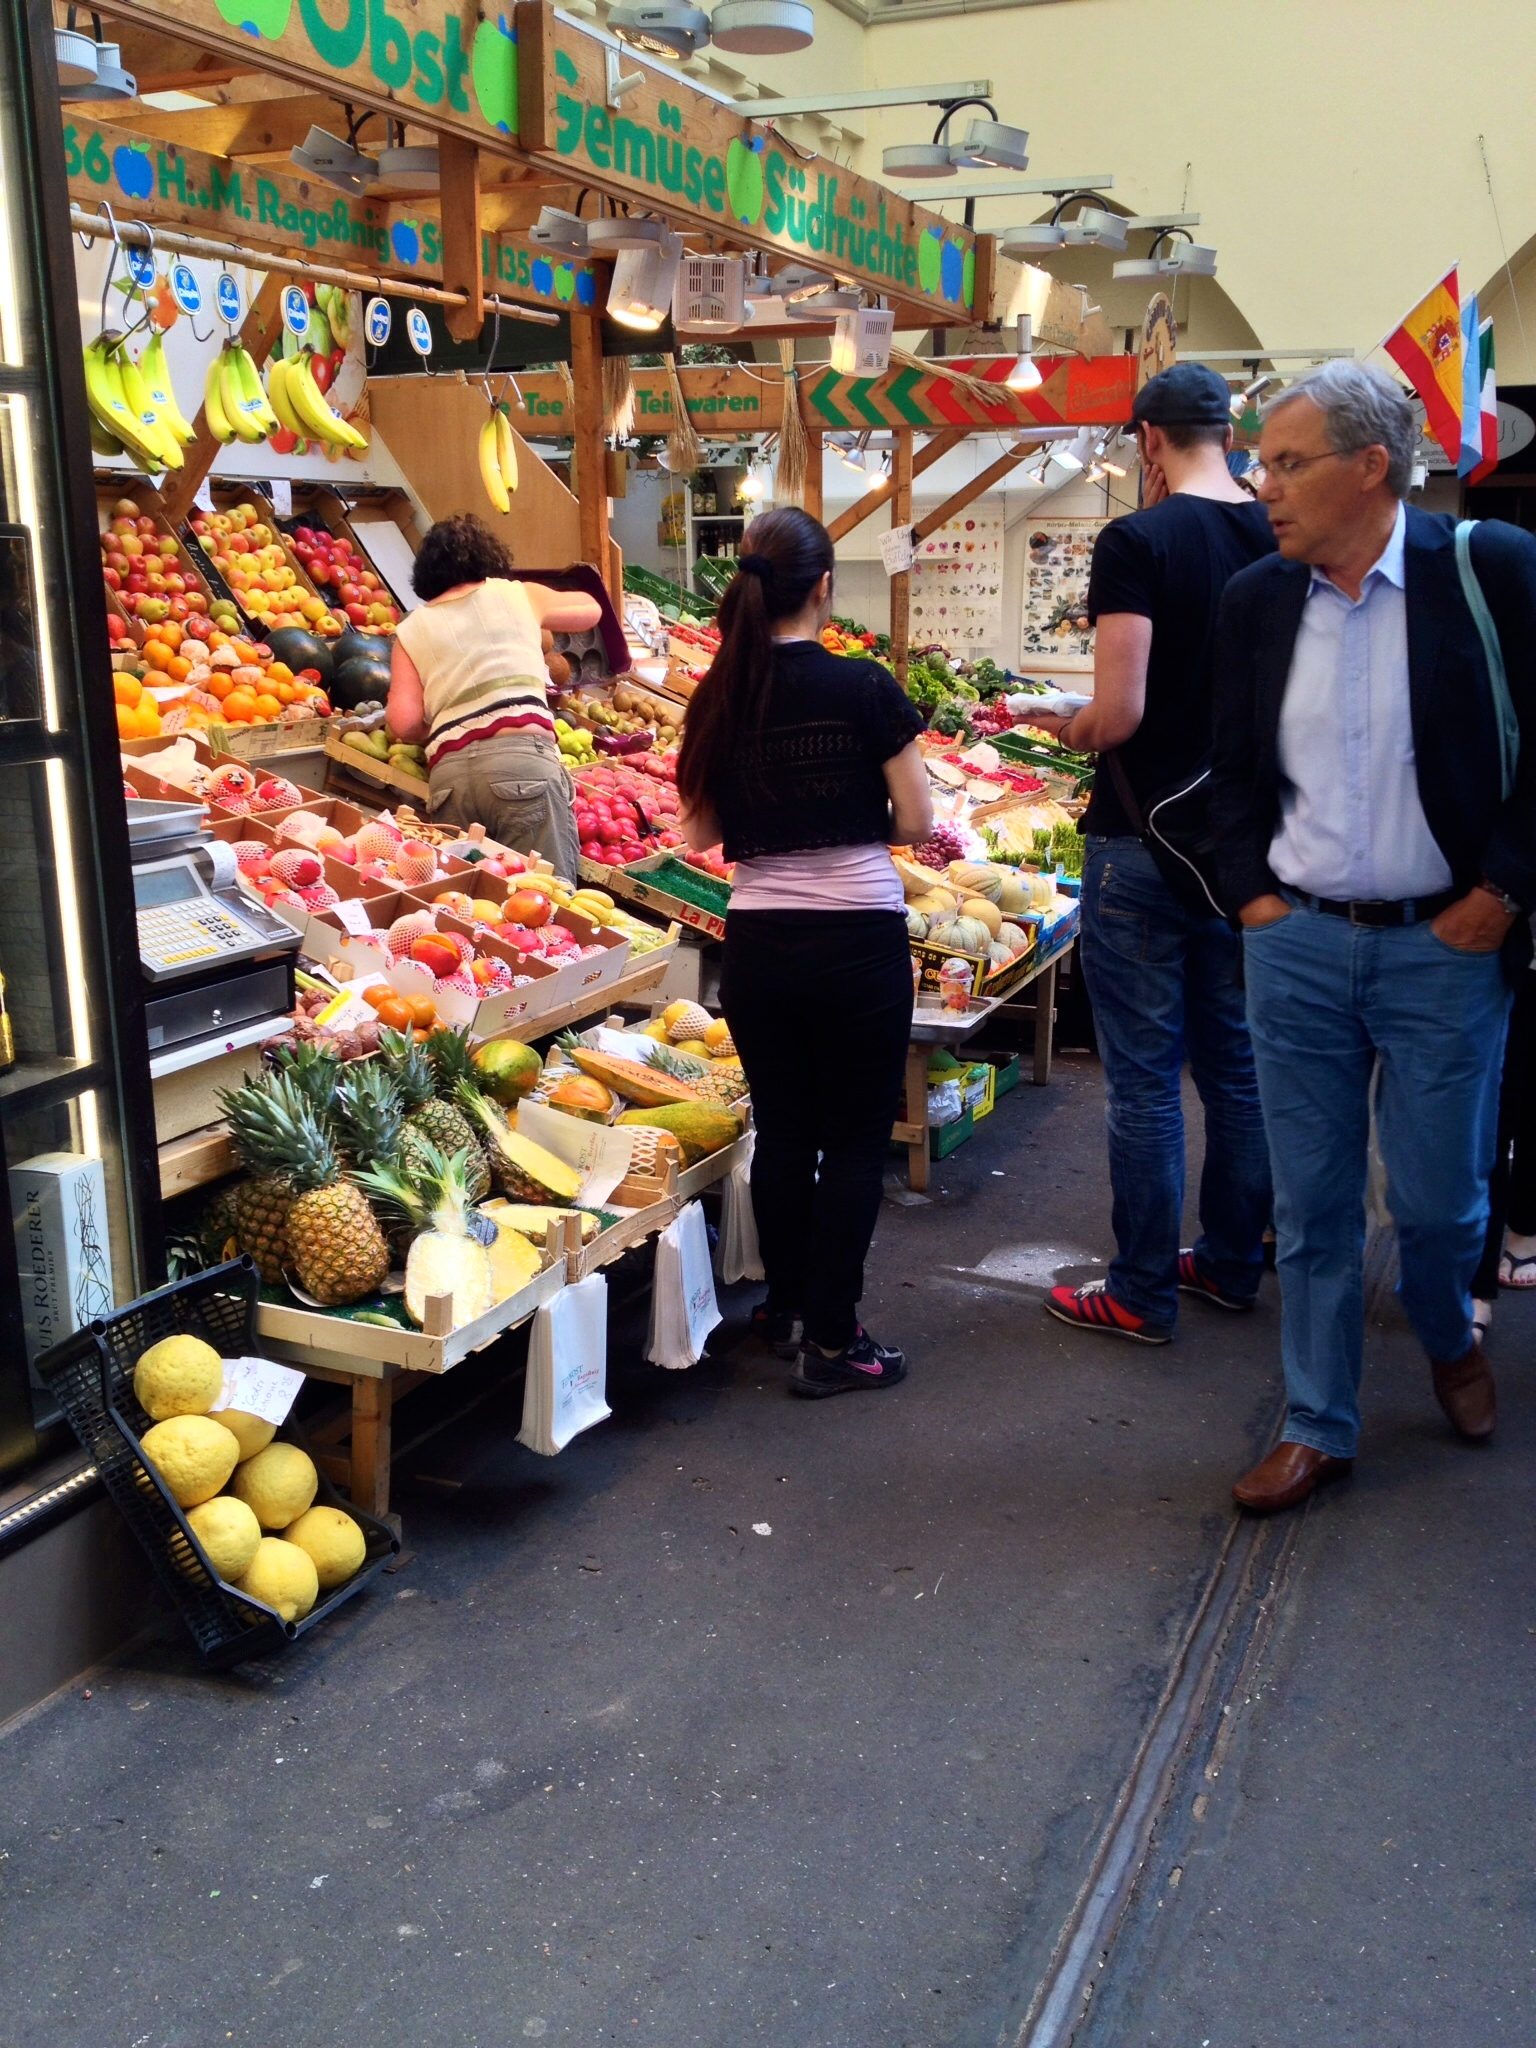 A fresh fruit and vegetable stall in the Markthalle